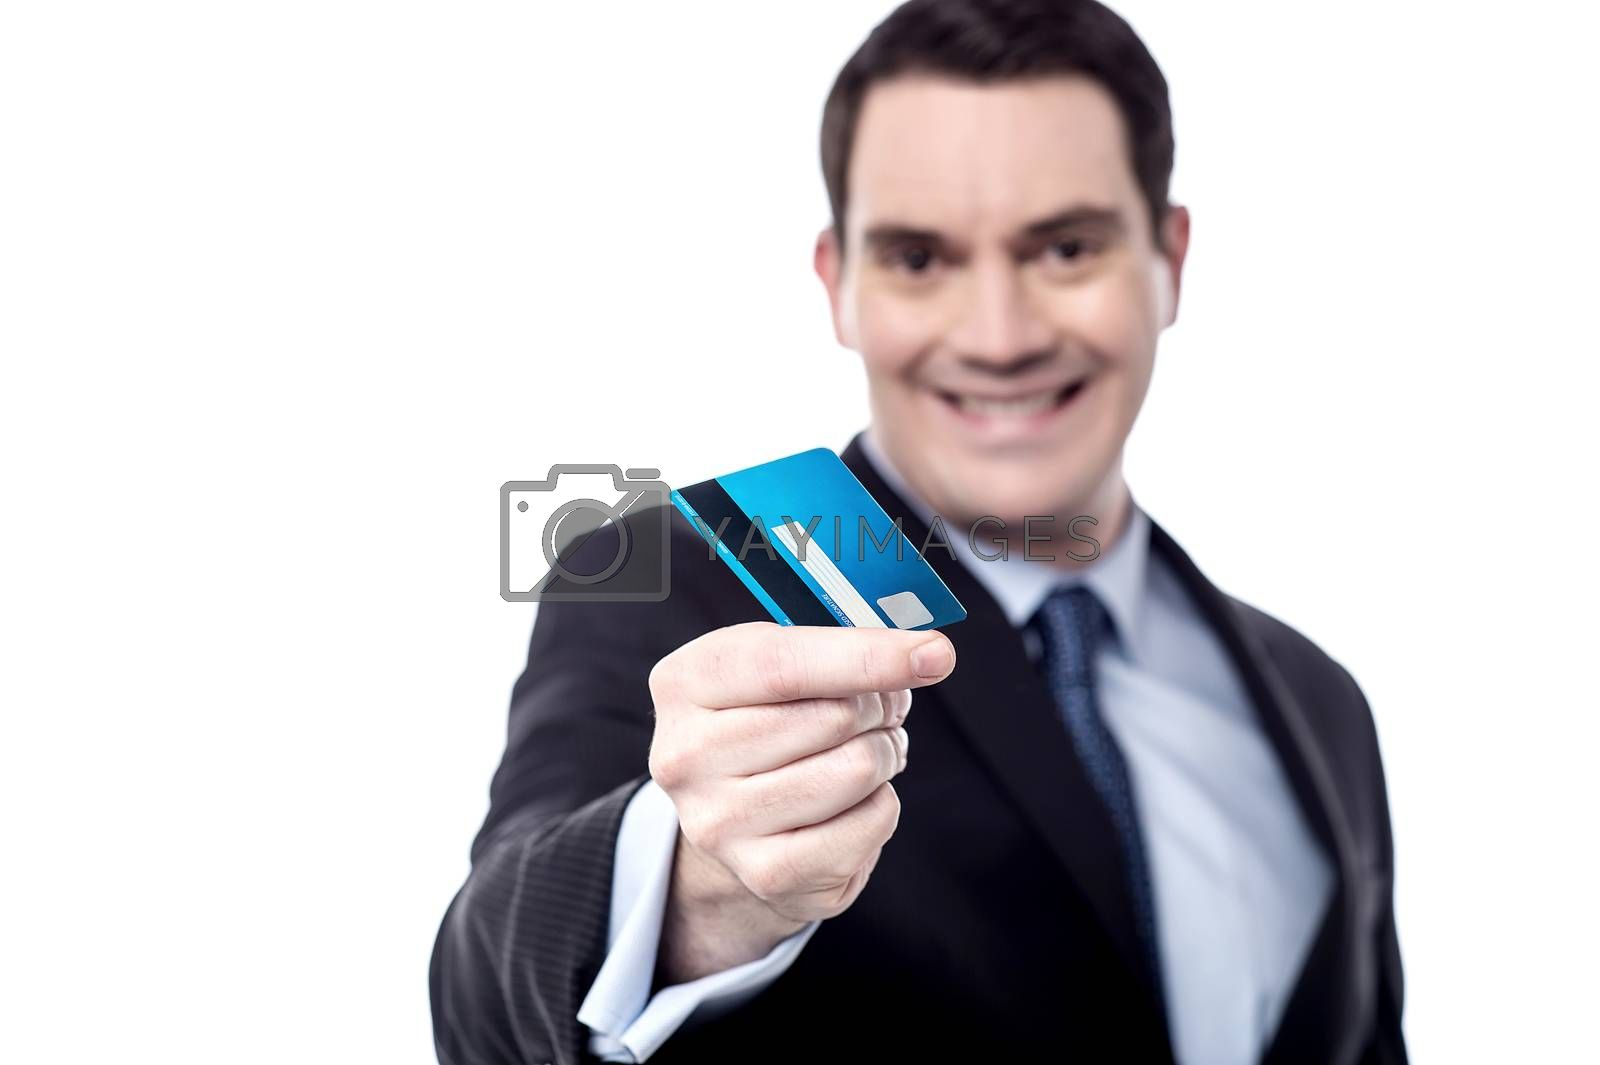 Smiling businessman offering his credit card over white